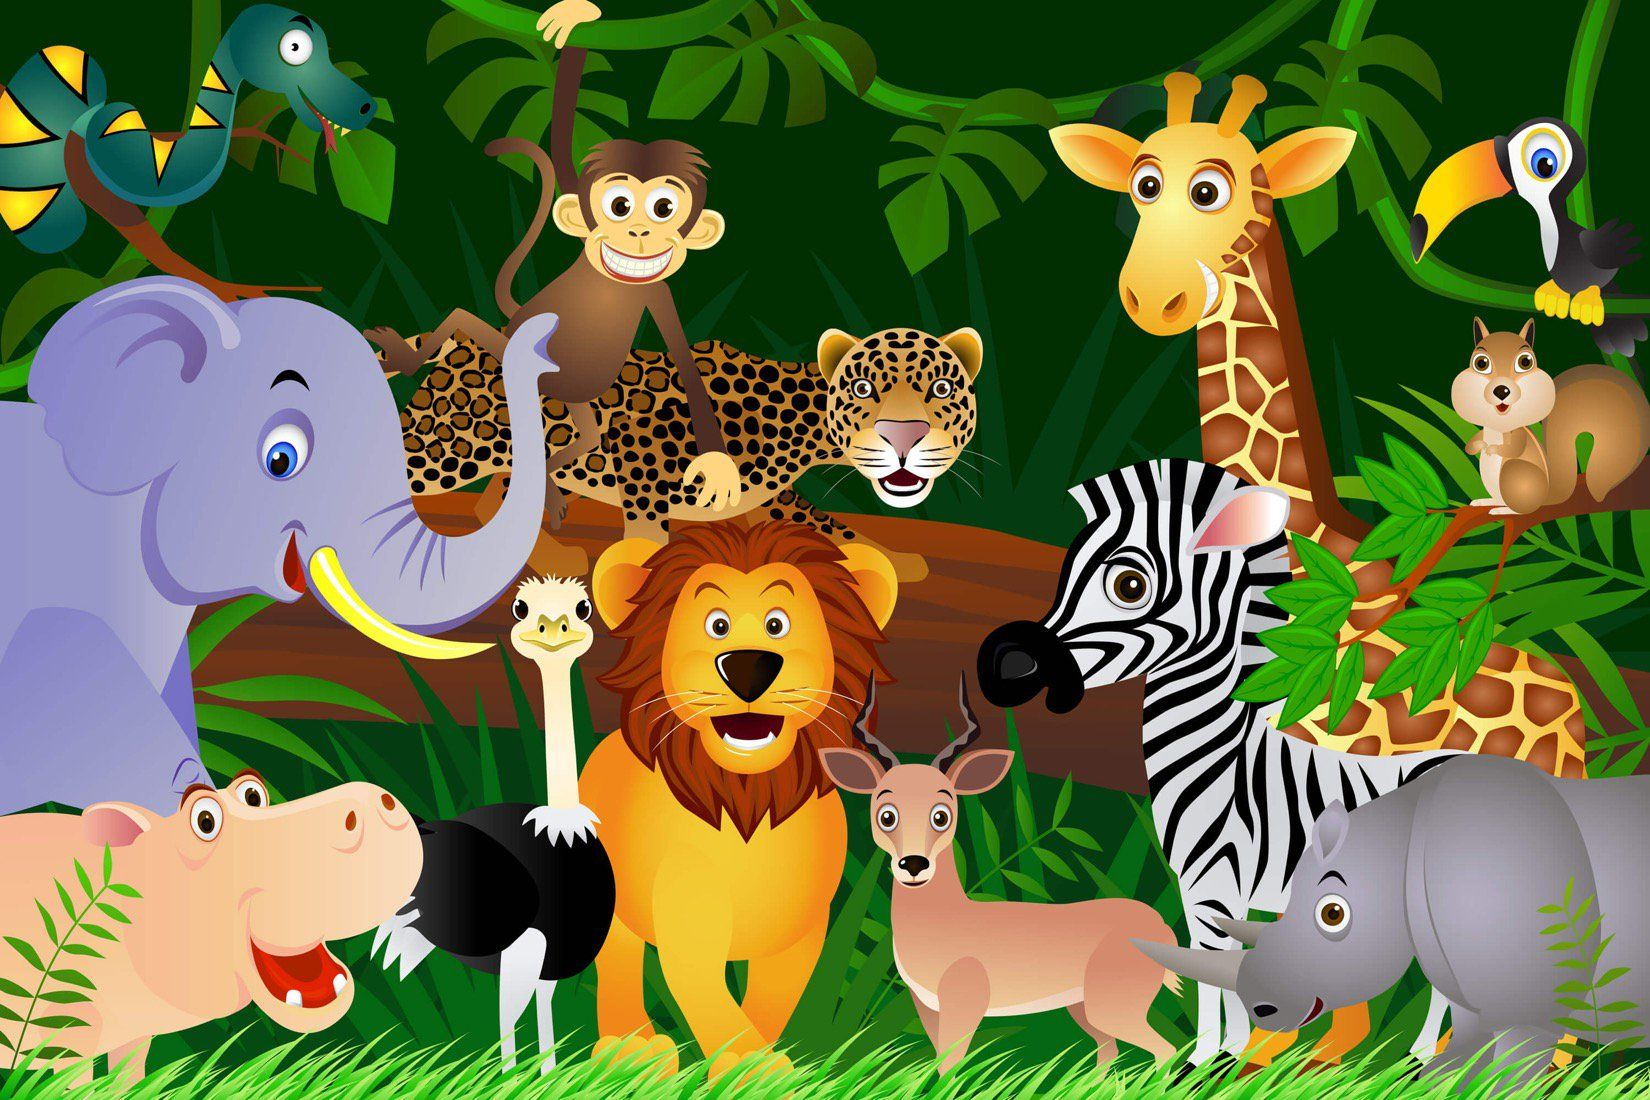 Jungle Animals Wallpaper Mural, custom made to suit your